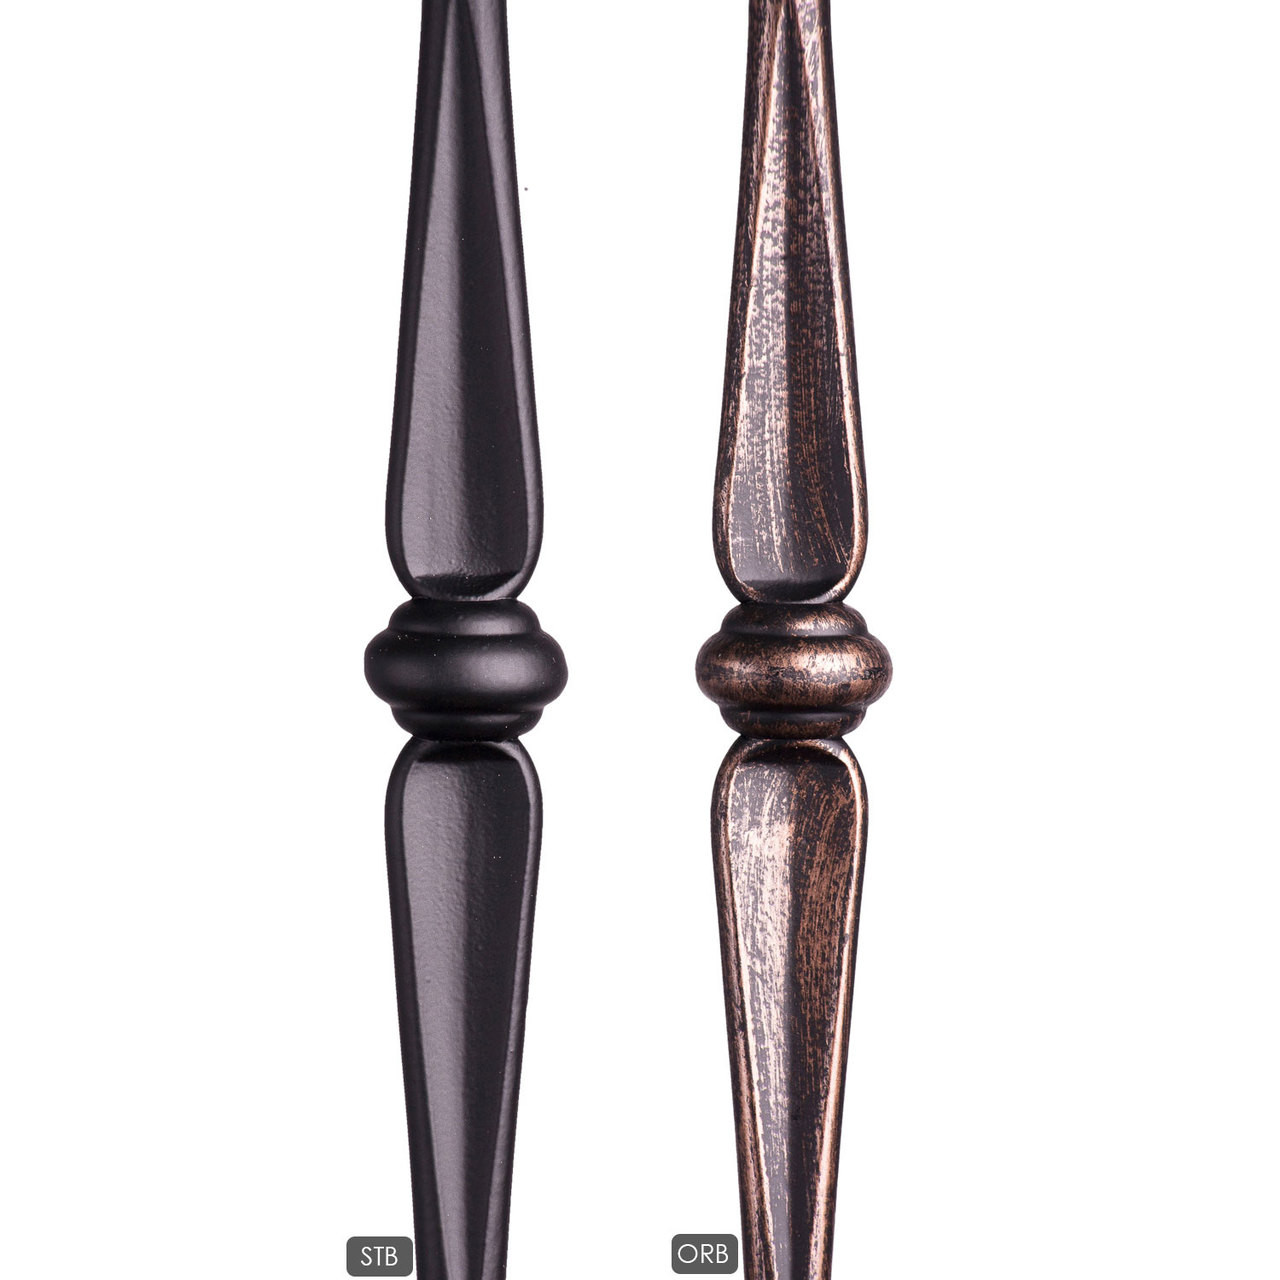 HF1.1.19 Newel is available in a satin black (stb) or oil rubbed bronze (orb) powder coating.